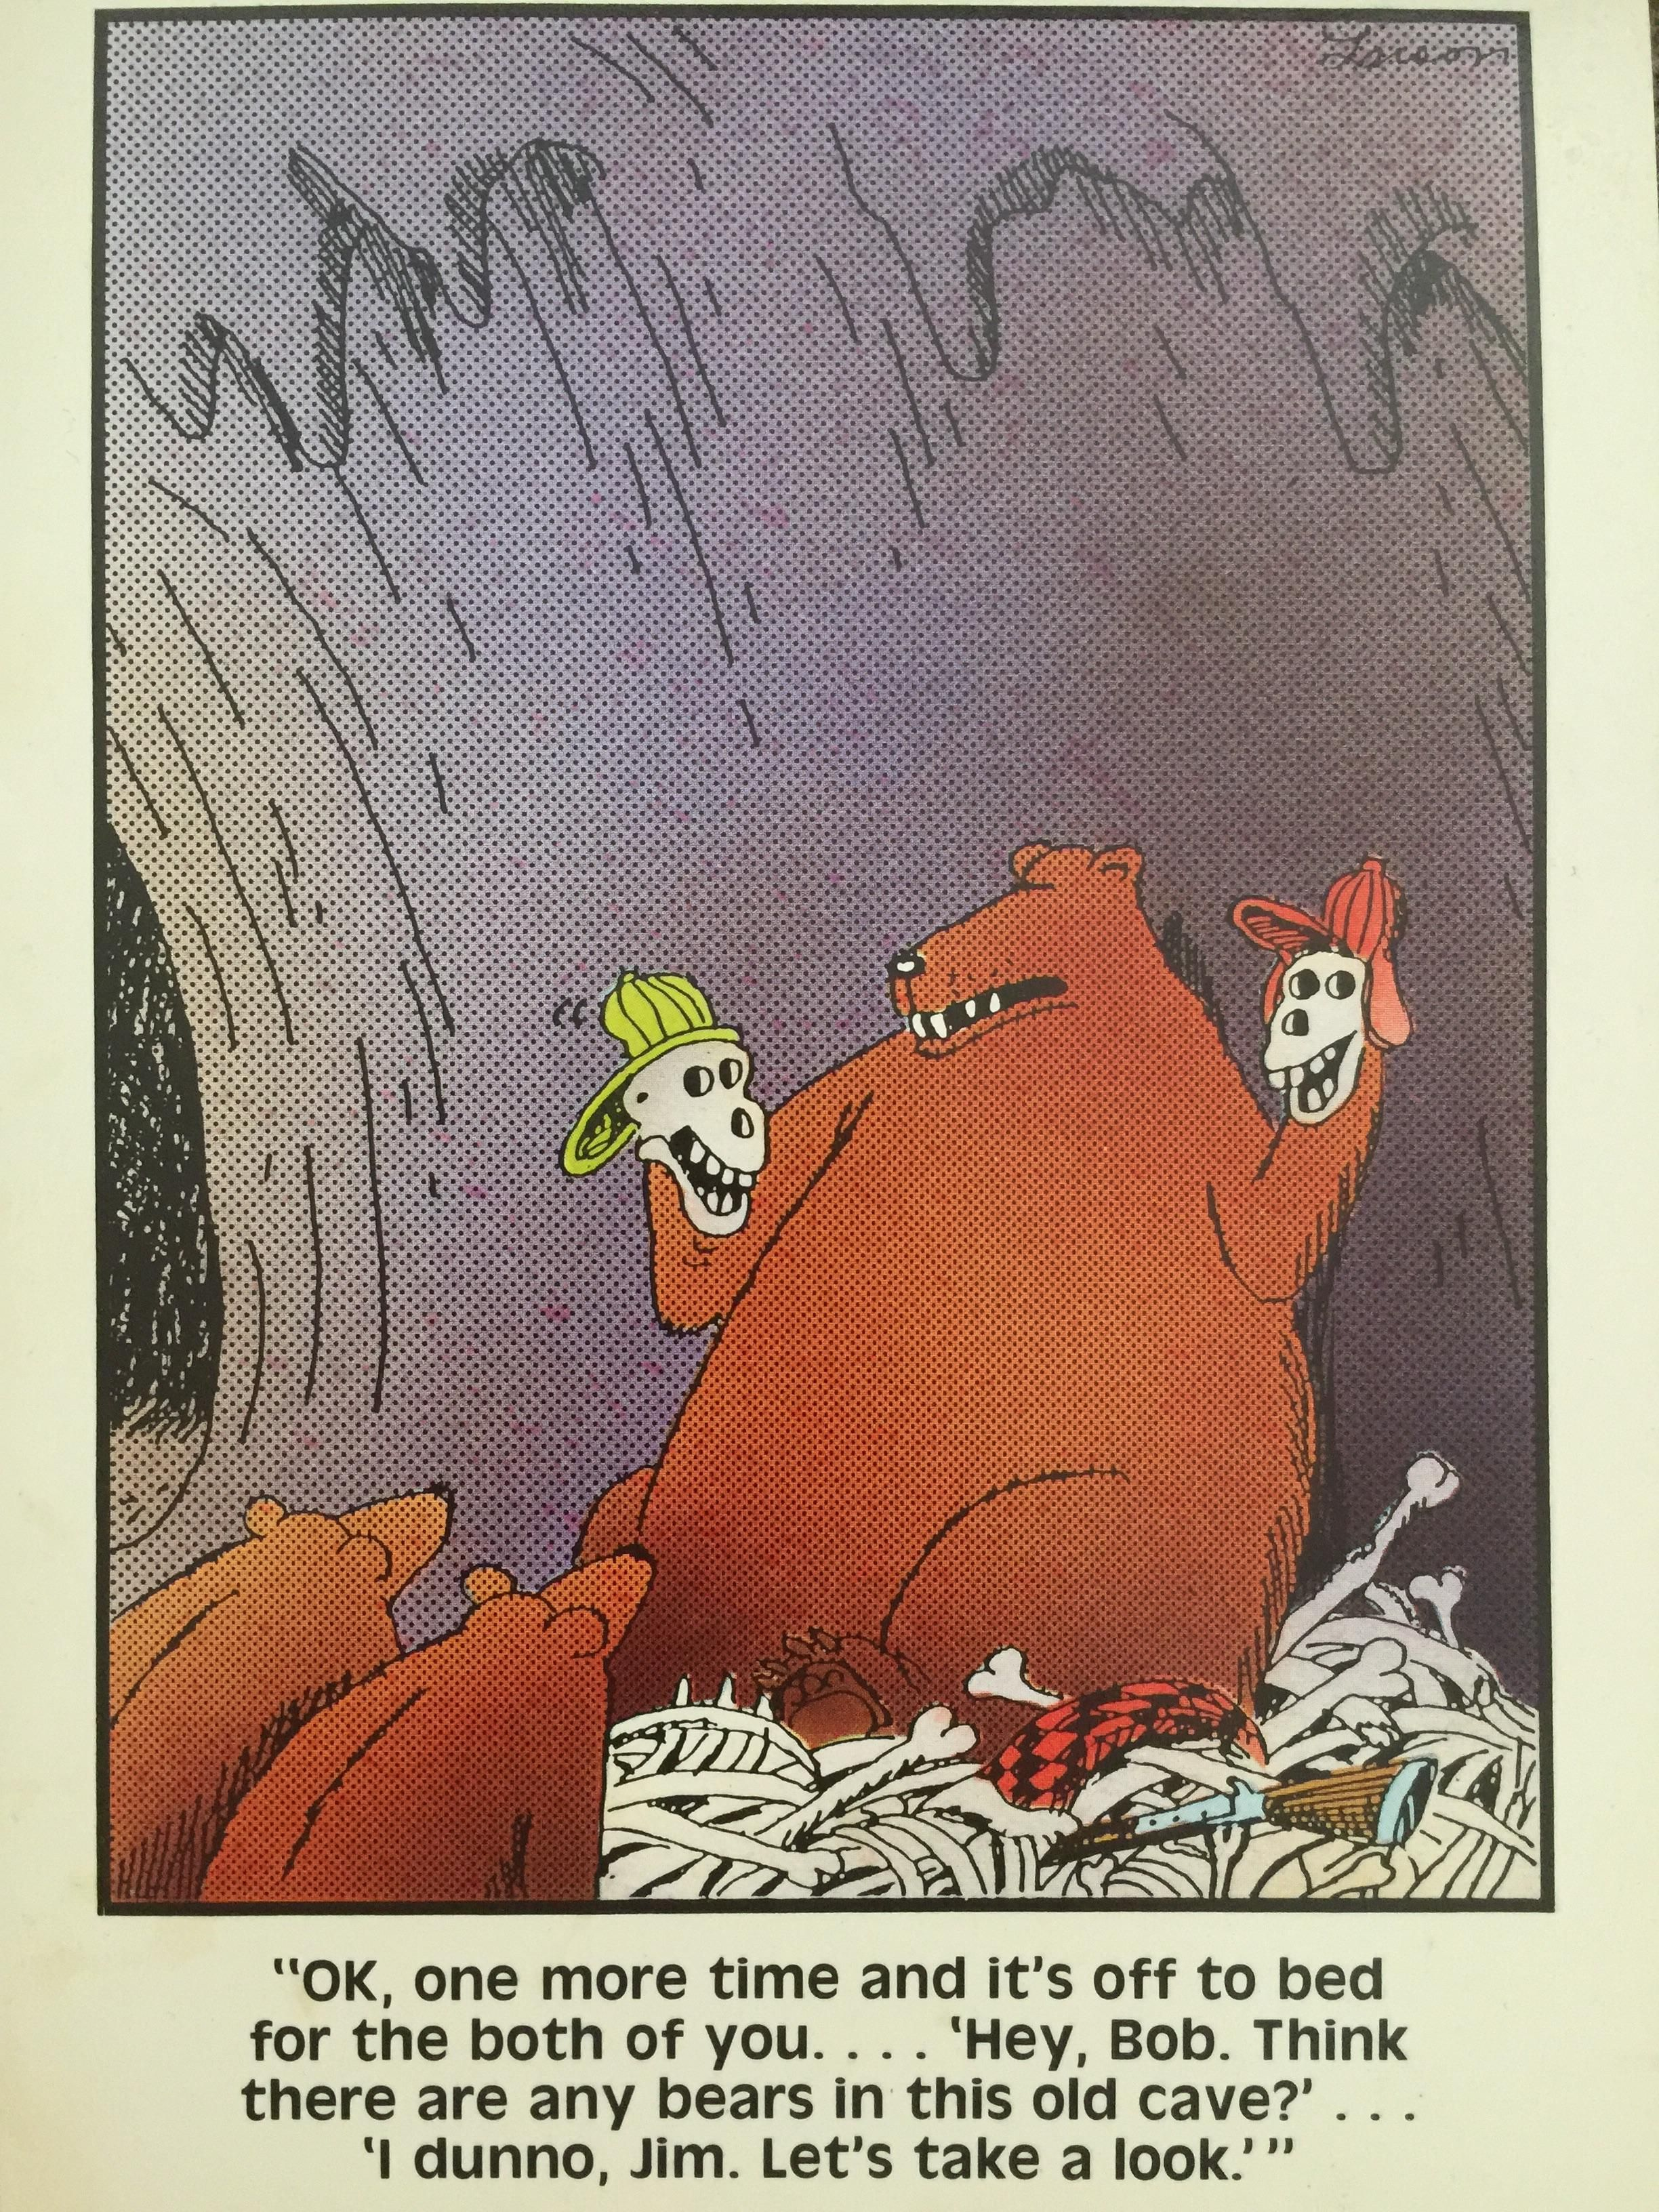 This Far Side card from 1984 I found while packing to move.